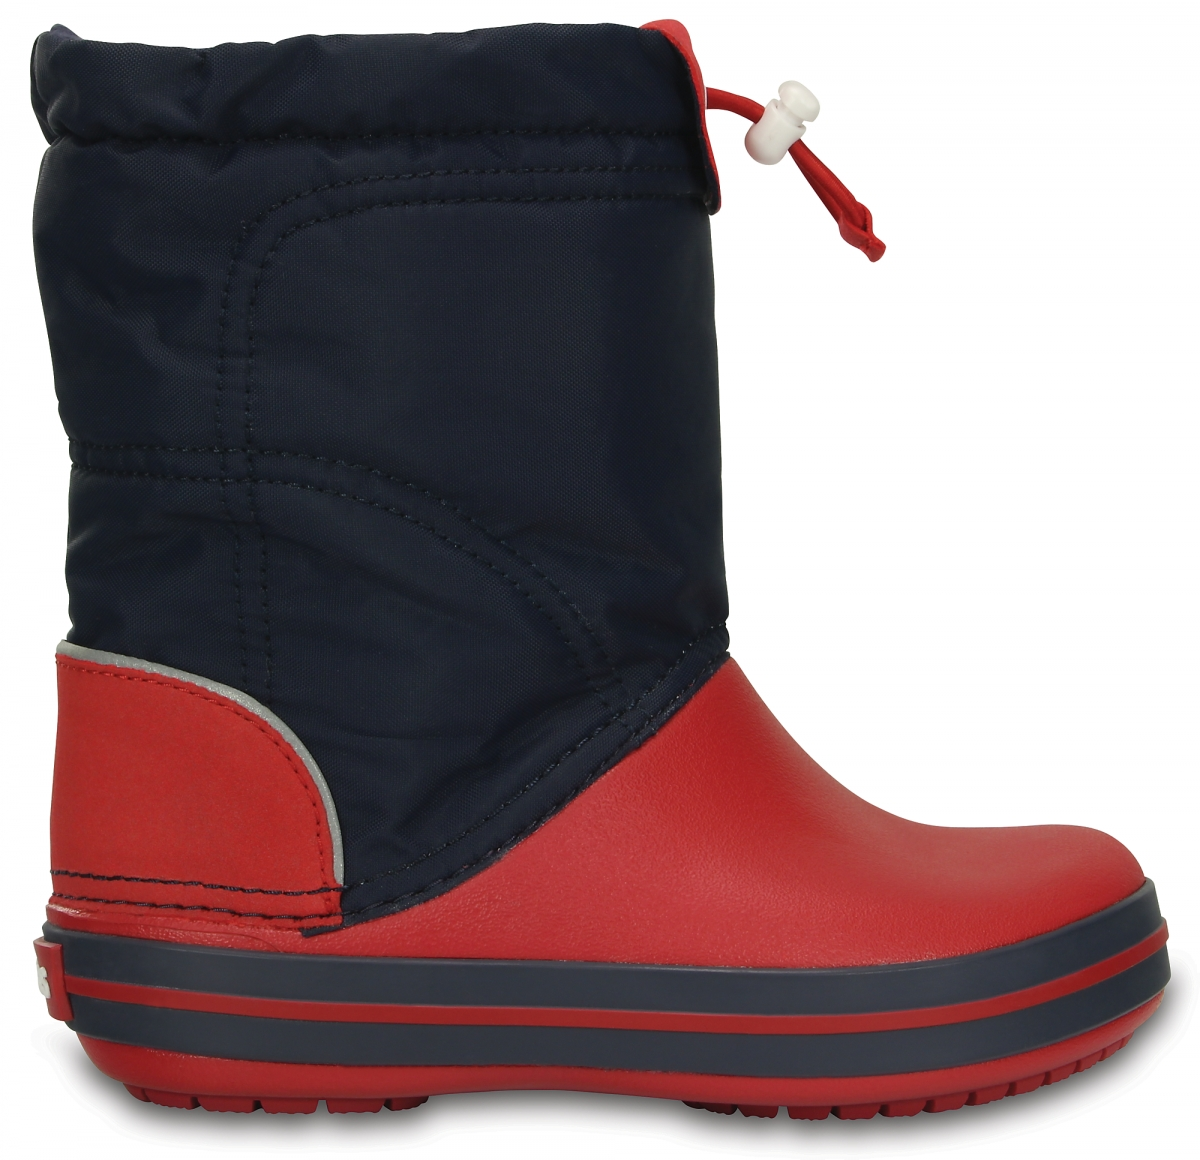 Crocs Crocband LodgePoint Boot Kids Navy/Red, J1 (32-33)